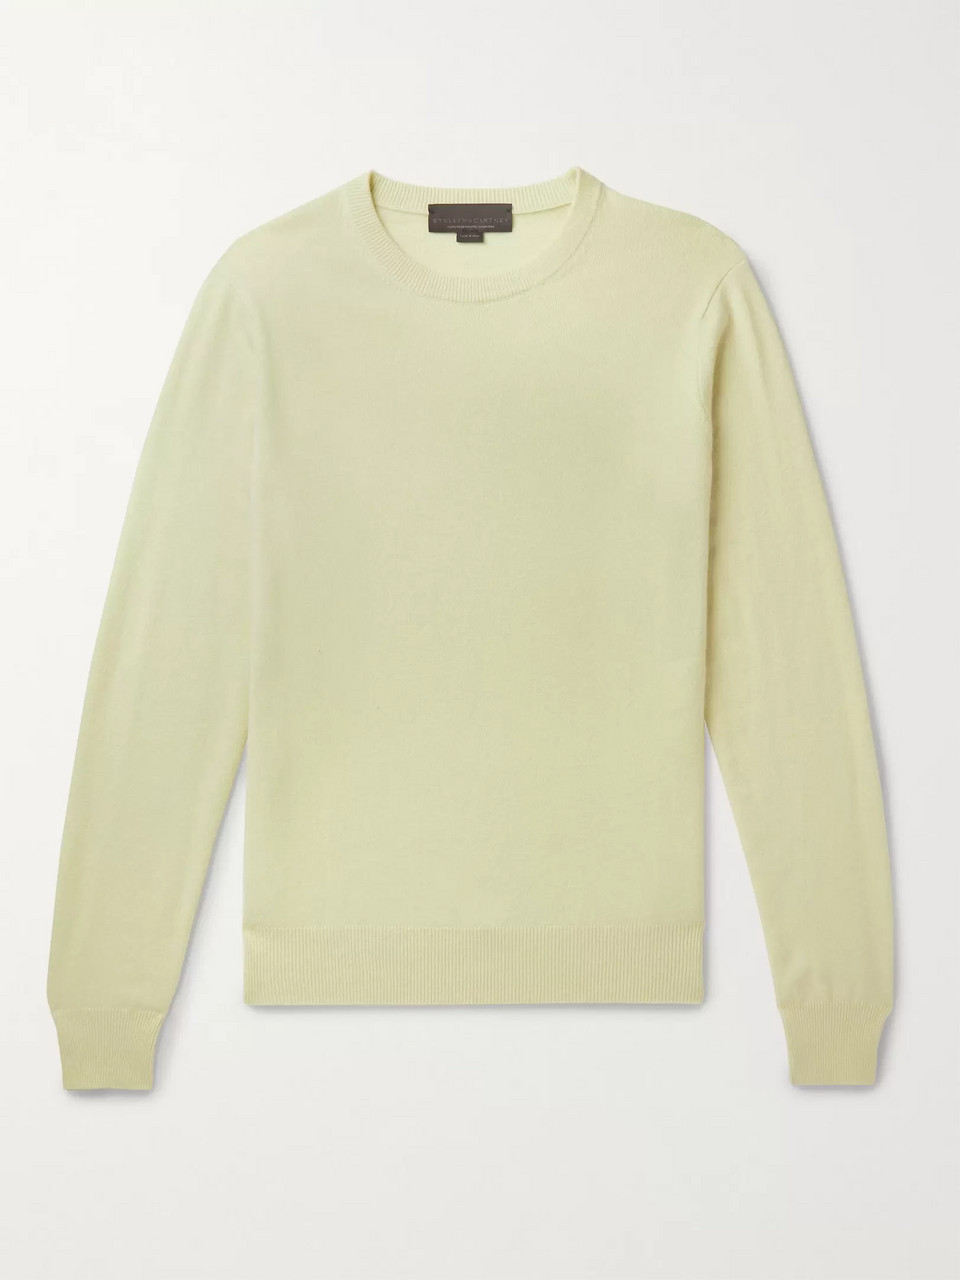 Stella McCartney Cashmere Sweater